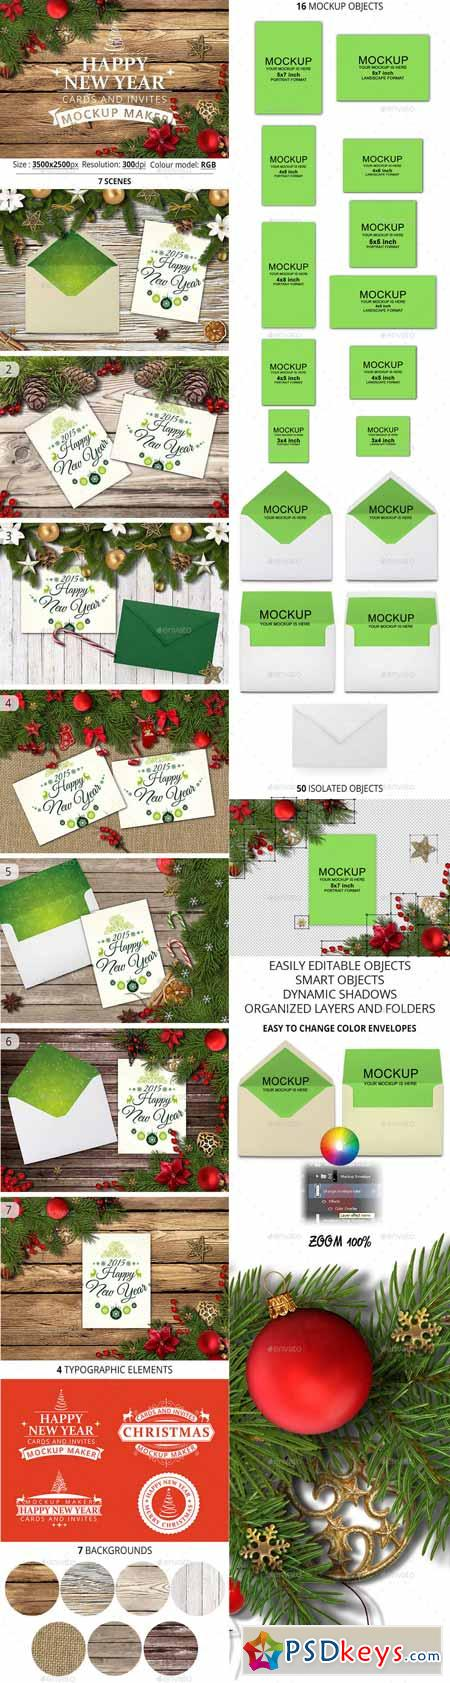 Happy New Year Cards And Invites Mockup Maker 12701120